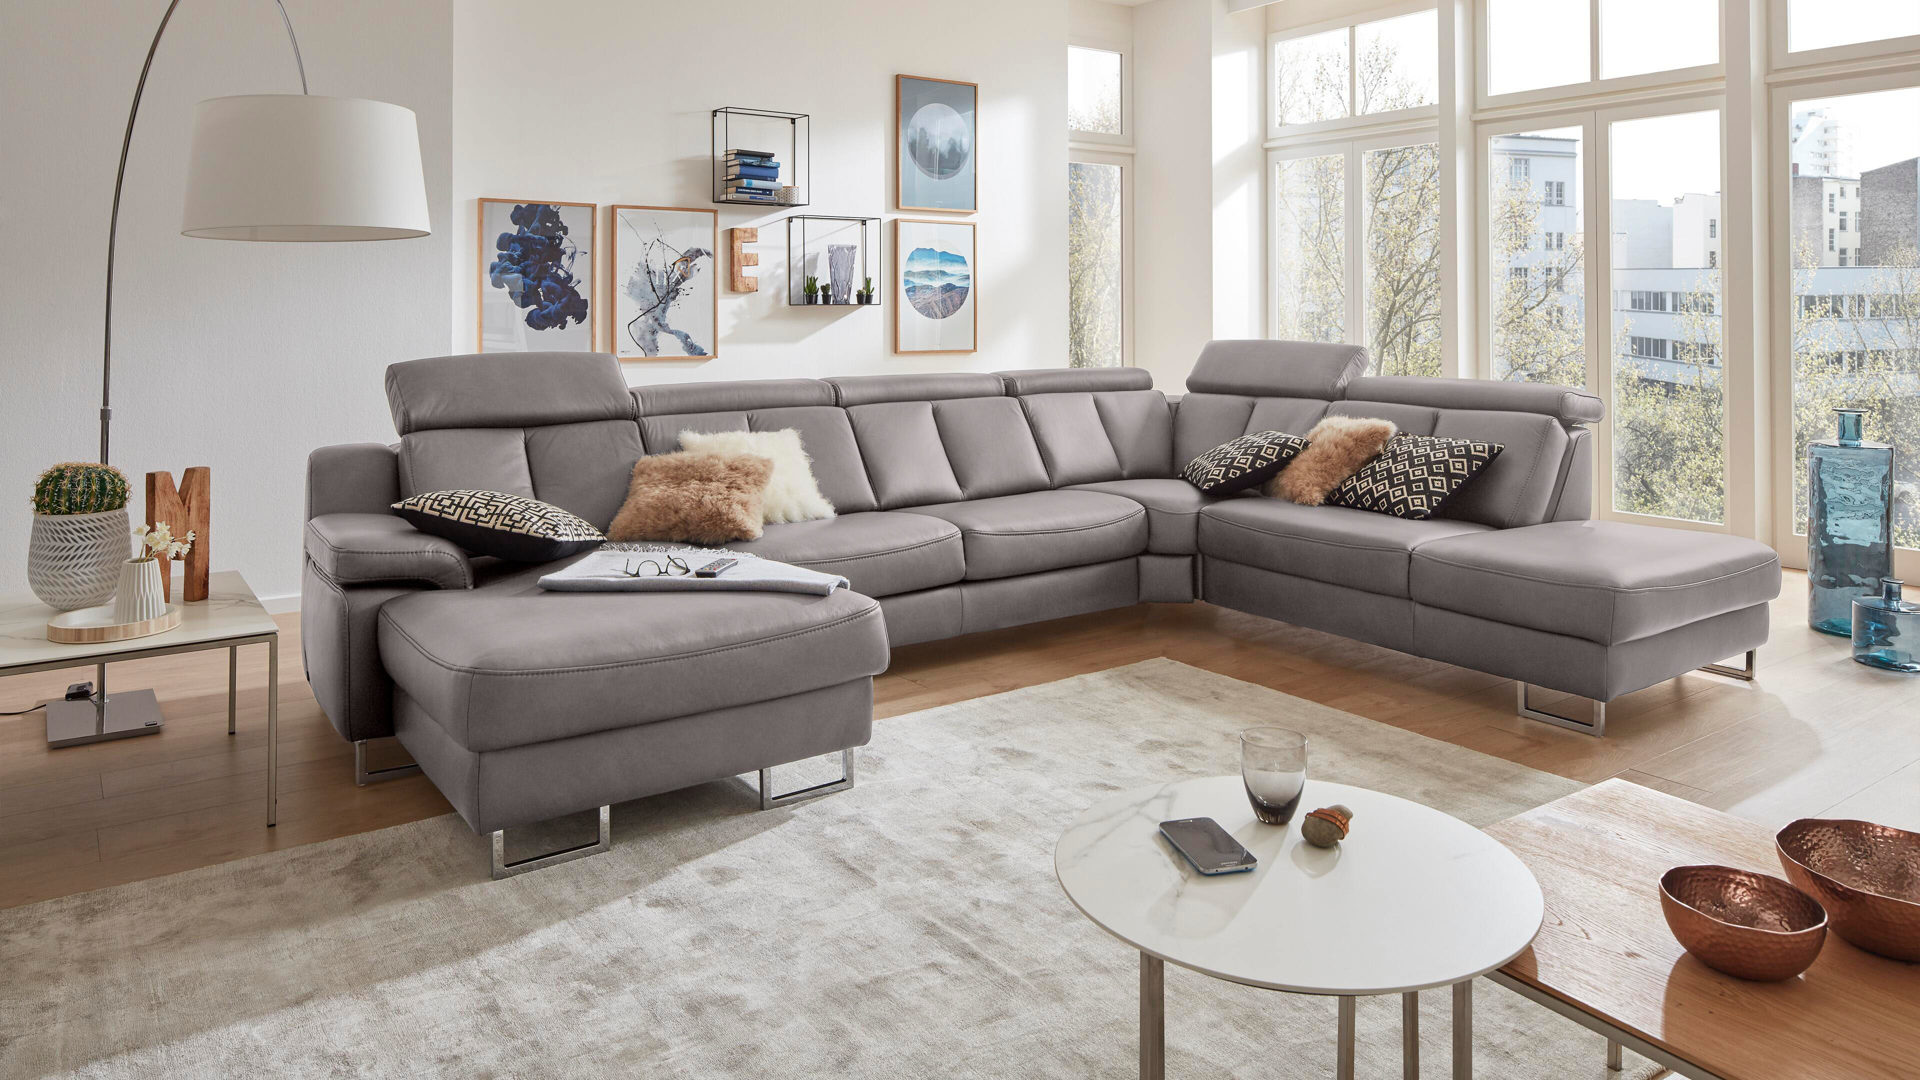 Interliving Sofa Serie 4050 Wohnlandschaft Graues Longlife Leder Cloudy